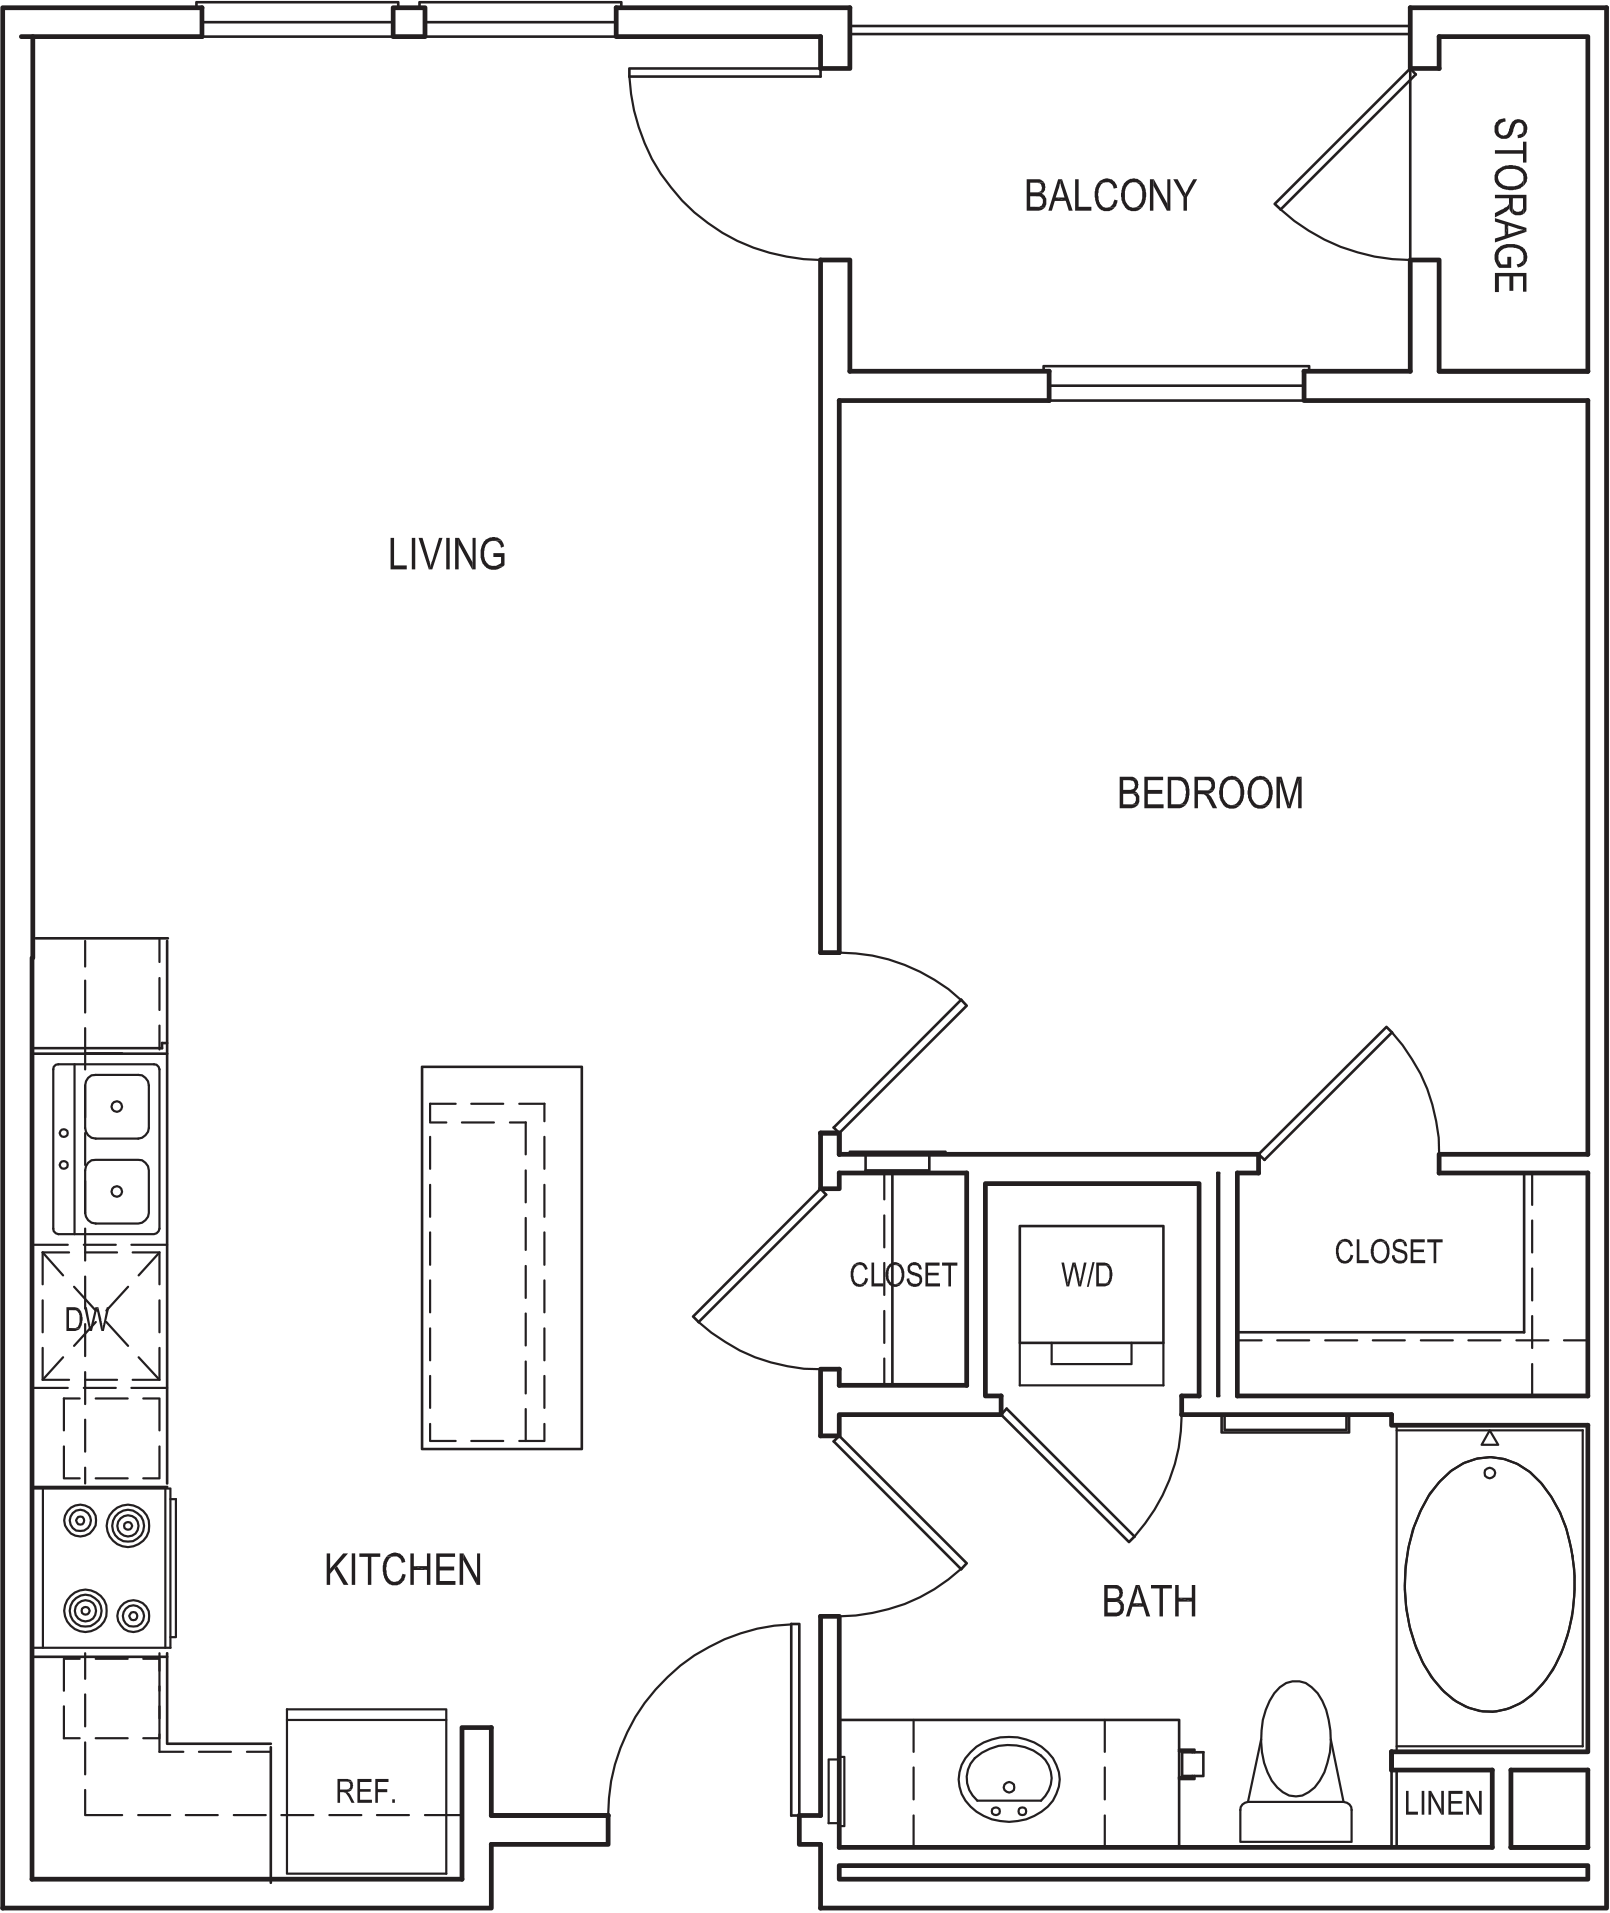 floor plans for new apartment homes in milpitas ca amalfi